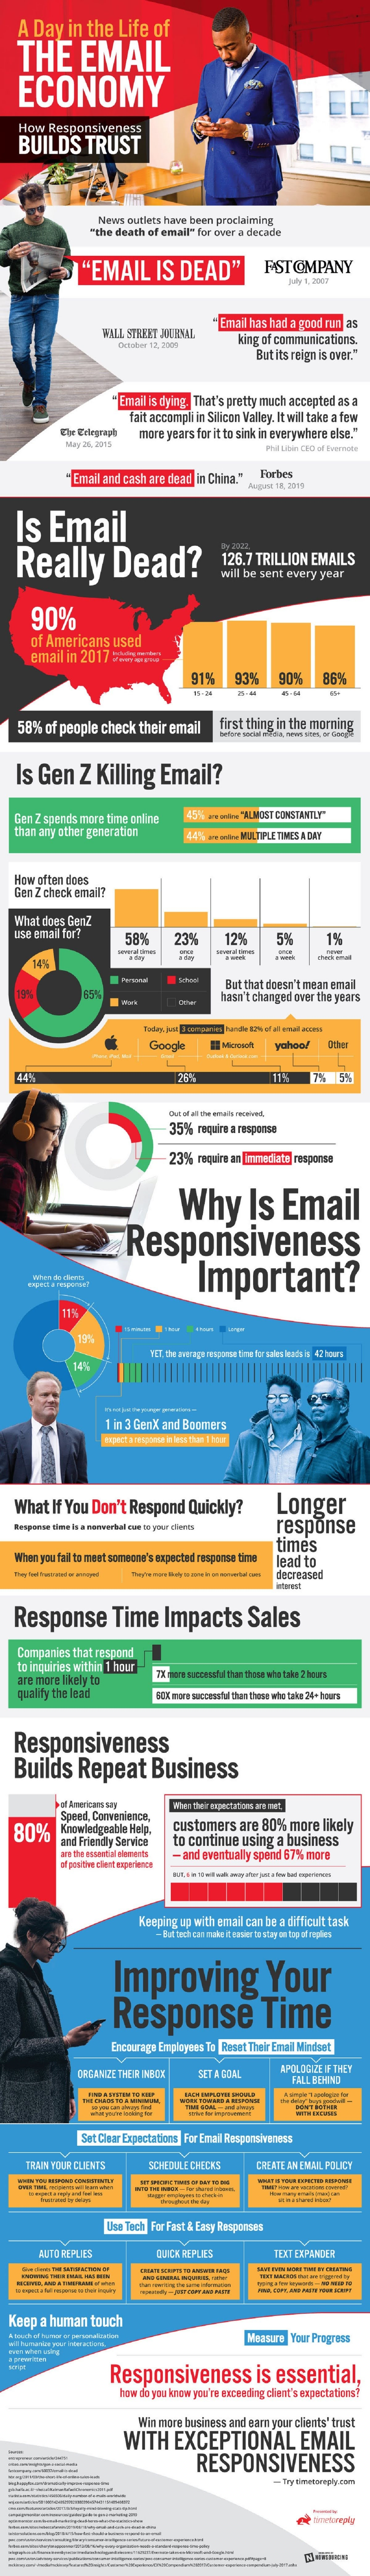 a-day-in-the-life-of-the-email-economy-infographic